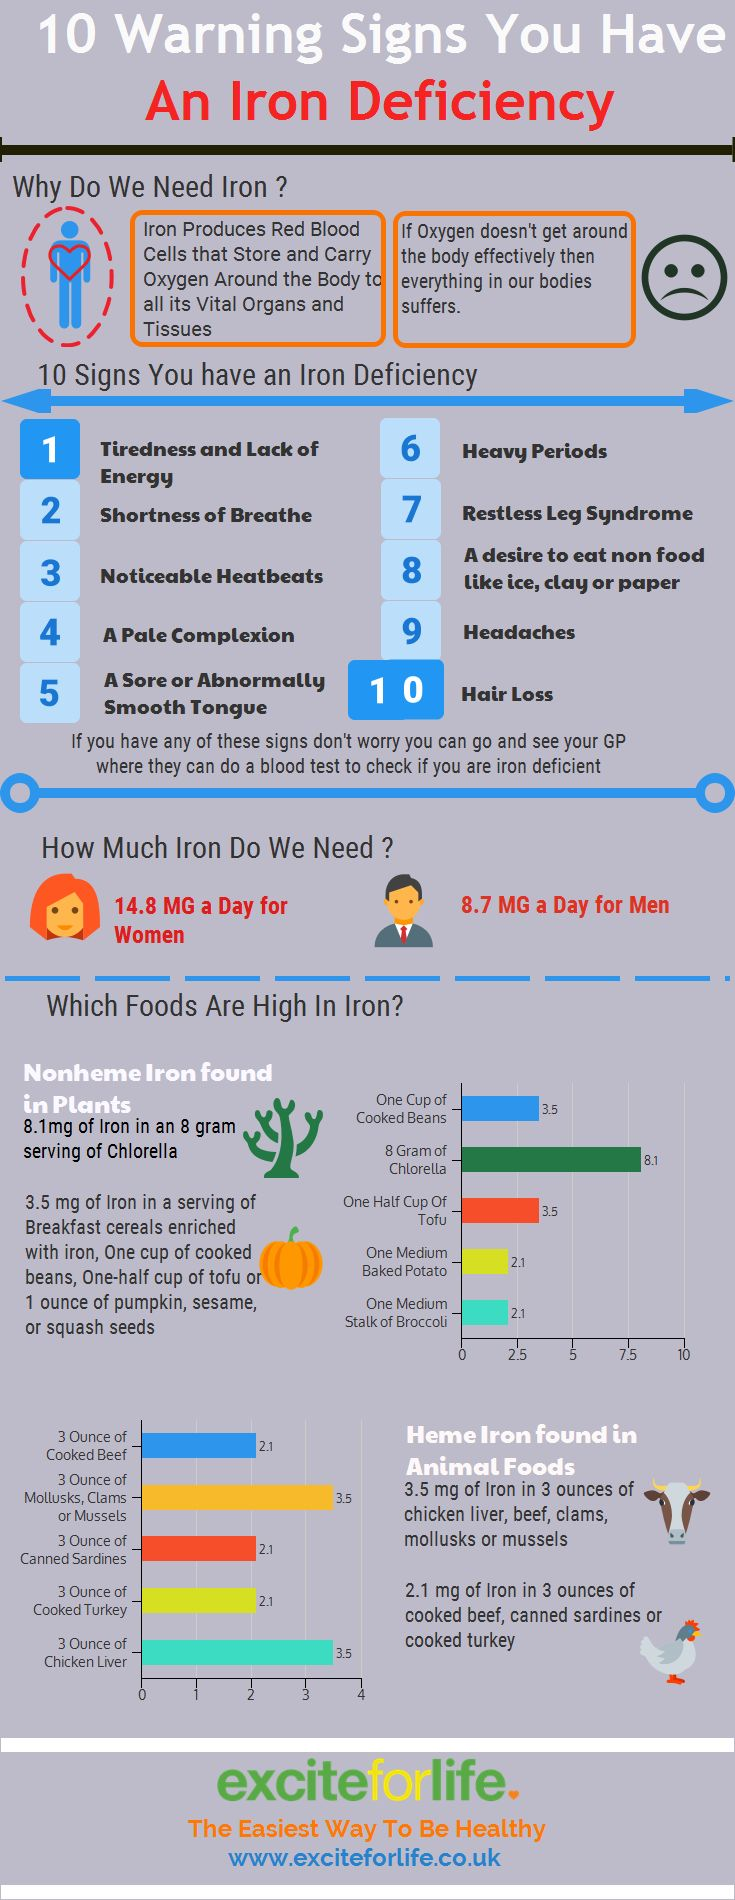 10 Warning Signs You Have an Iron Deficiency!  This infographic tells you what the symptoms are, how much iron you need and what foods are rich in iron Organic chlorella powder has 58% of your RDI of iron in just one serving!  The Easiest Way to be Healthy  Pin and share with family and friends